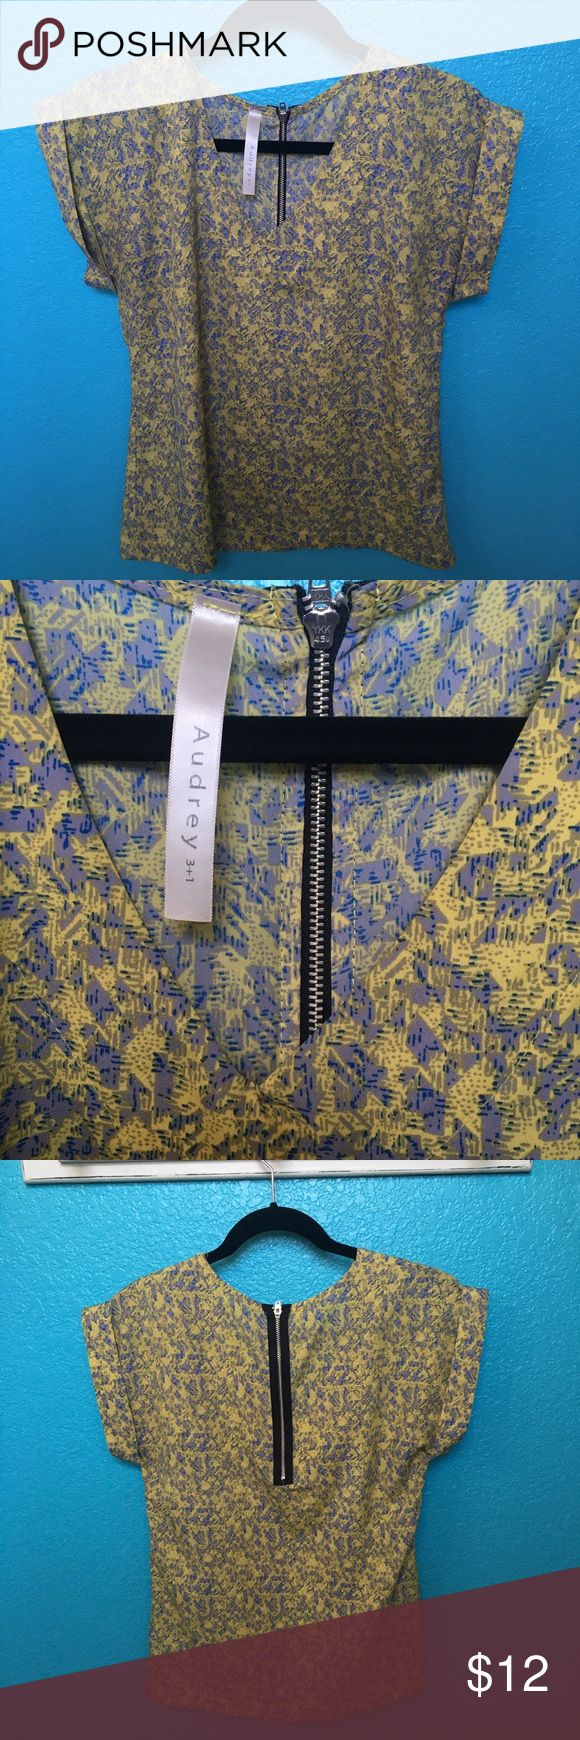 Audrey 3+ 1 Yellow Zip Up Top V neck top with a funky geometric print and an exposed zipper in the back. Easy top that can be worn to work when tucked into a pencil skirt or can be worn casually with white jeans. Make an offer! Audrey 3+1 Tops Blouses